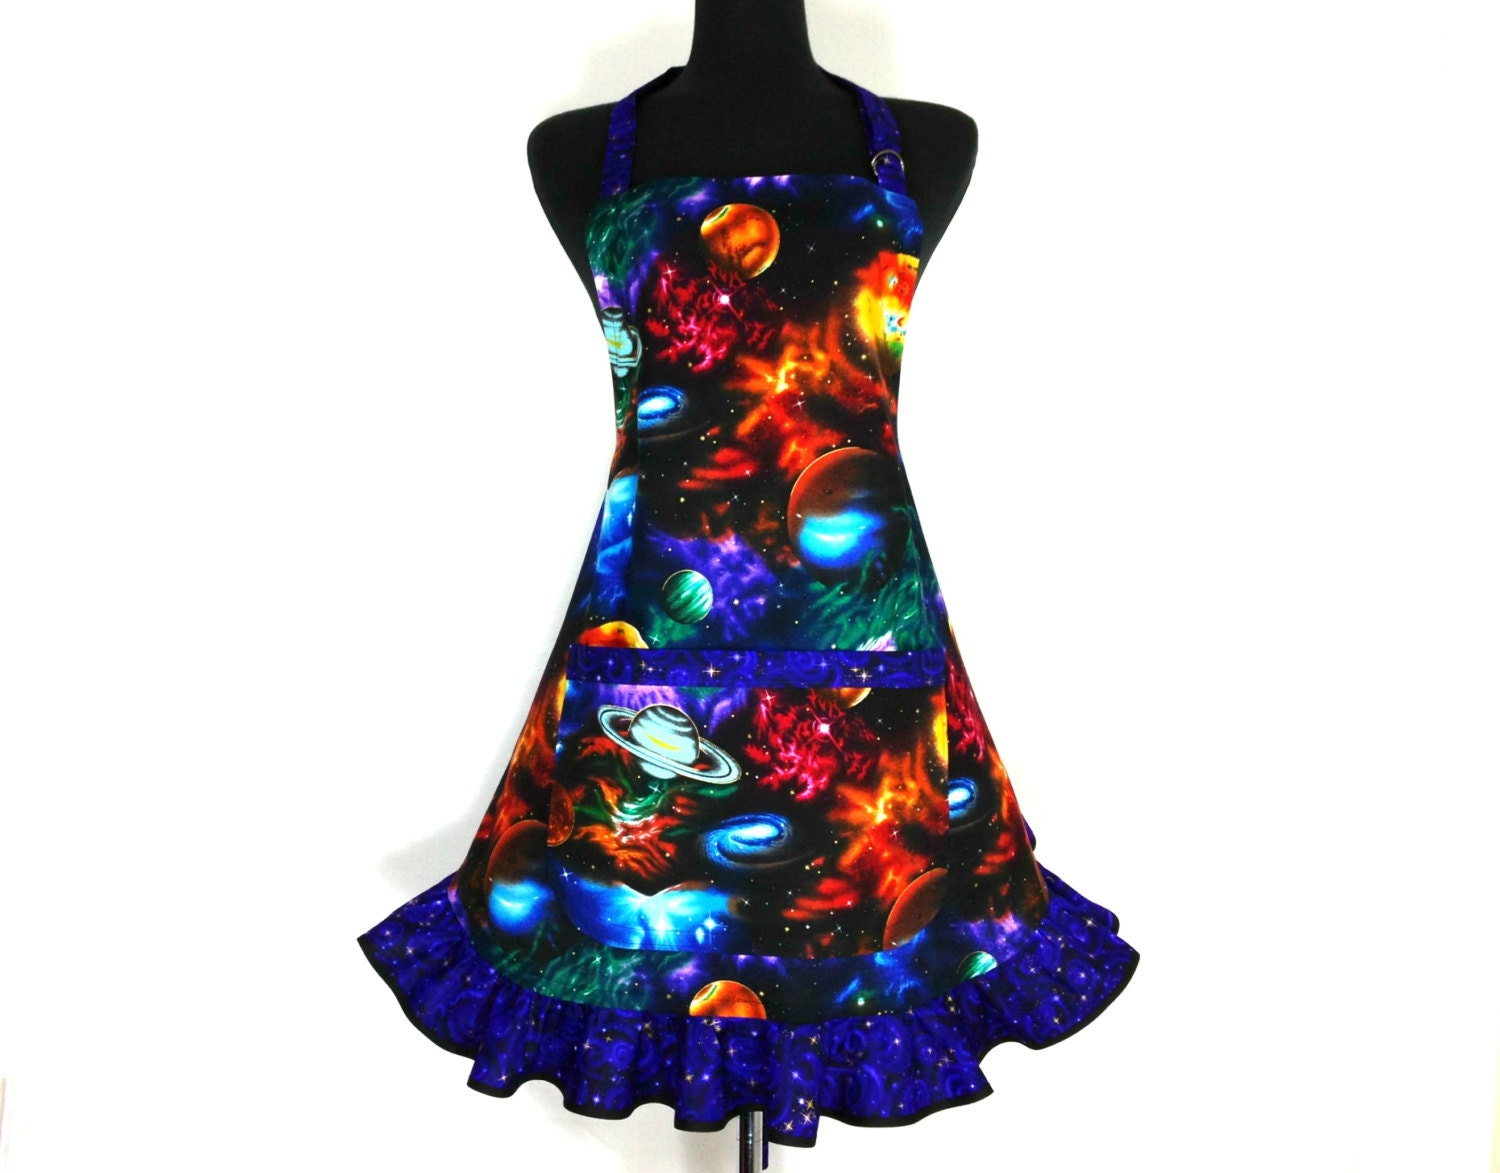 Outer Space Apron , Planets, Galaxies, Sci Fi , Starry Night , Retro Kitchen Ruffle, Astronomy, Geek Girl - ElsiesFlat